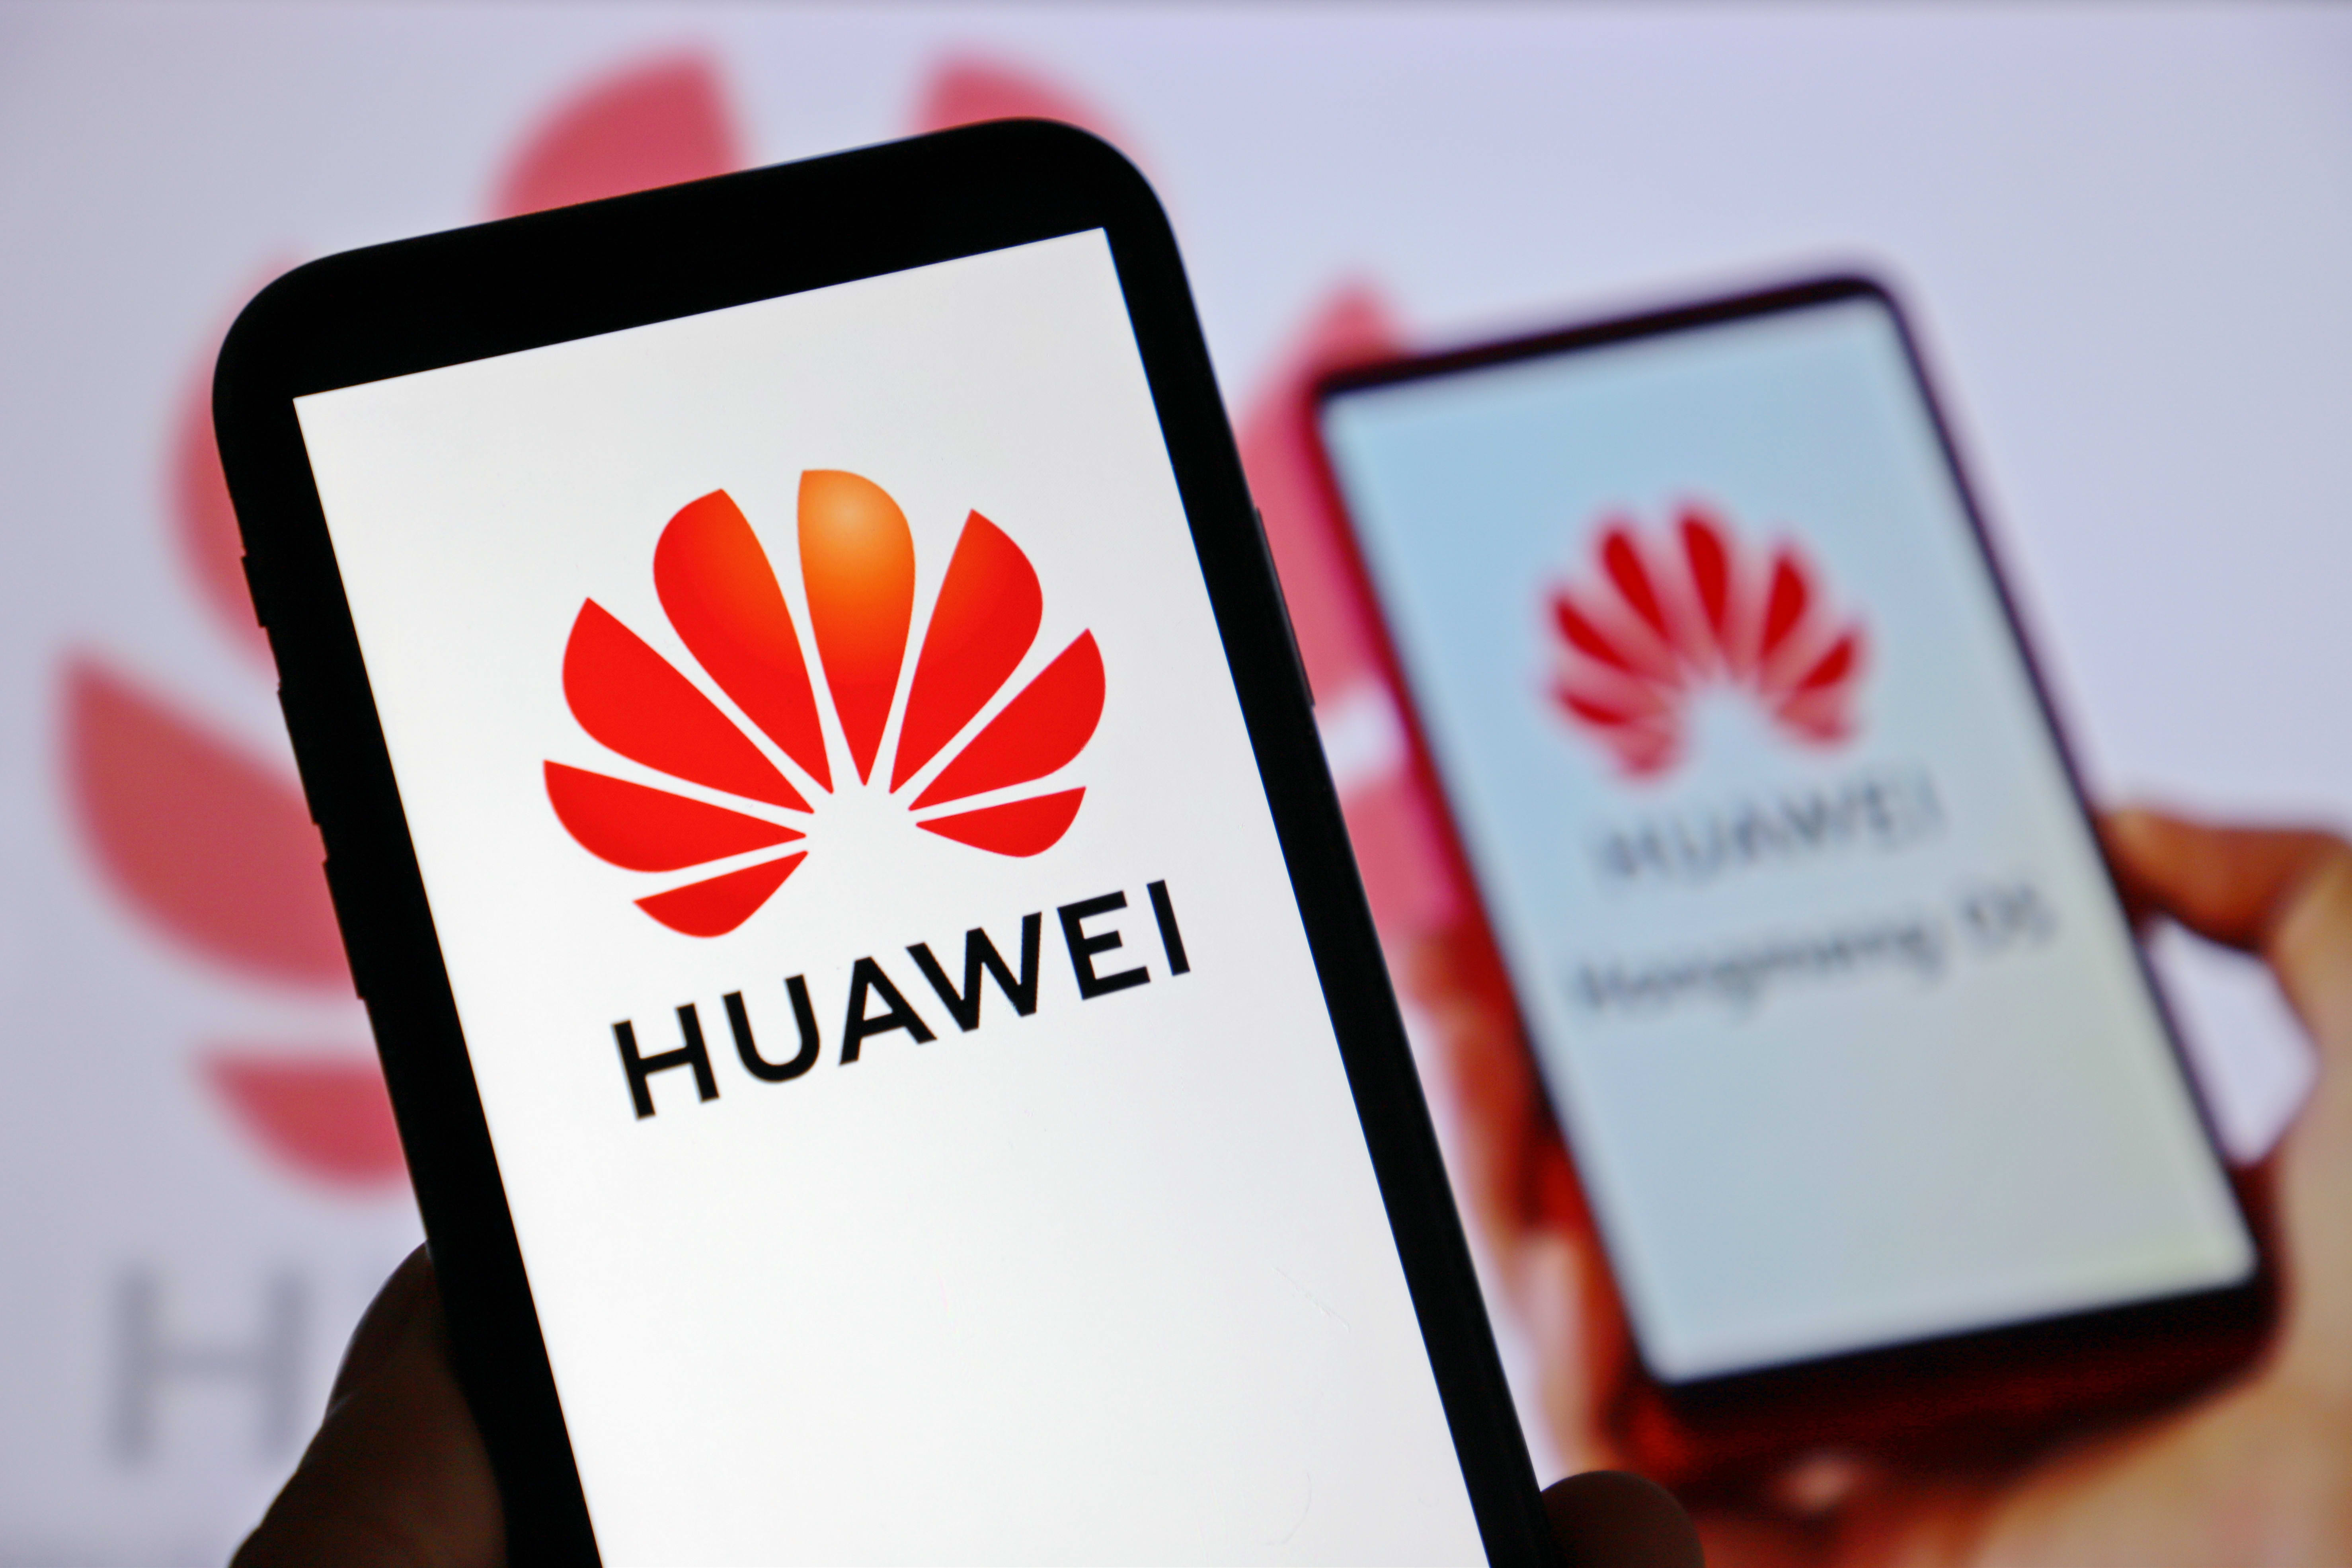 Huawei launches its own operating system on smartphones in challenge to Google Android